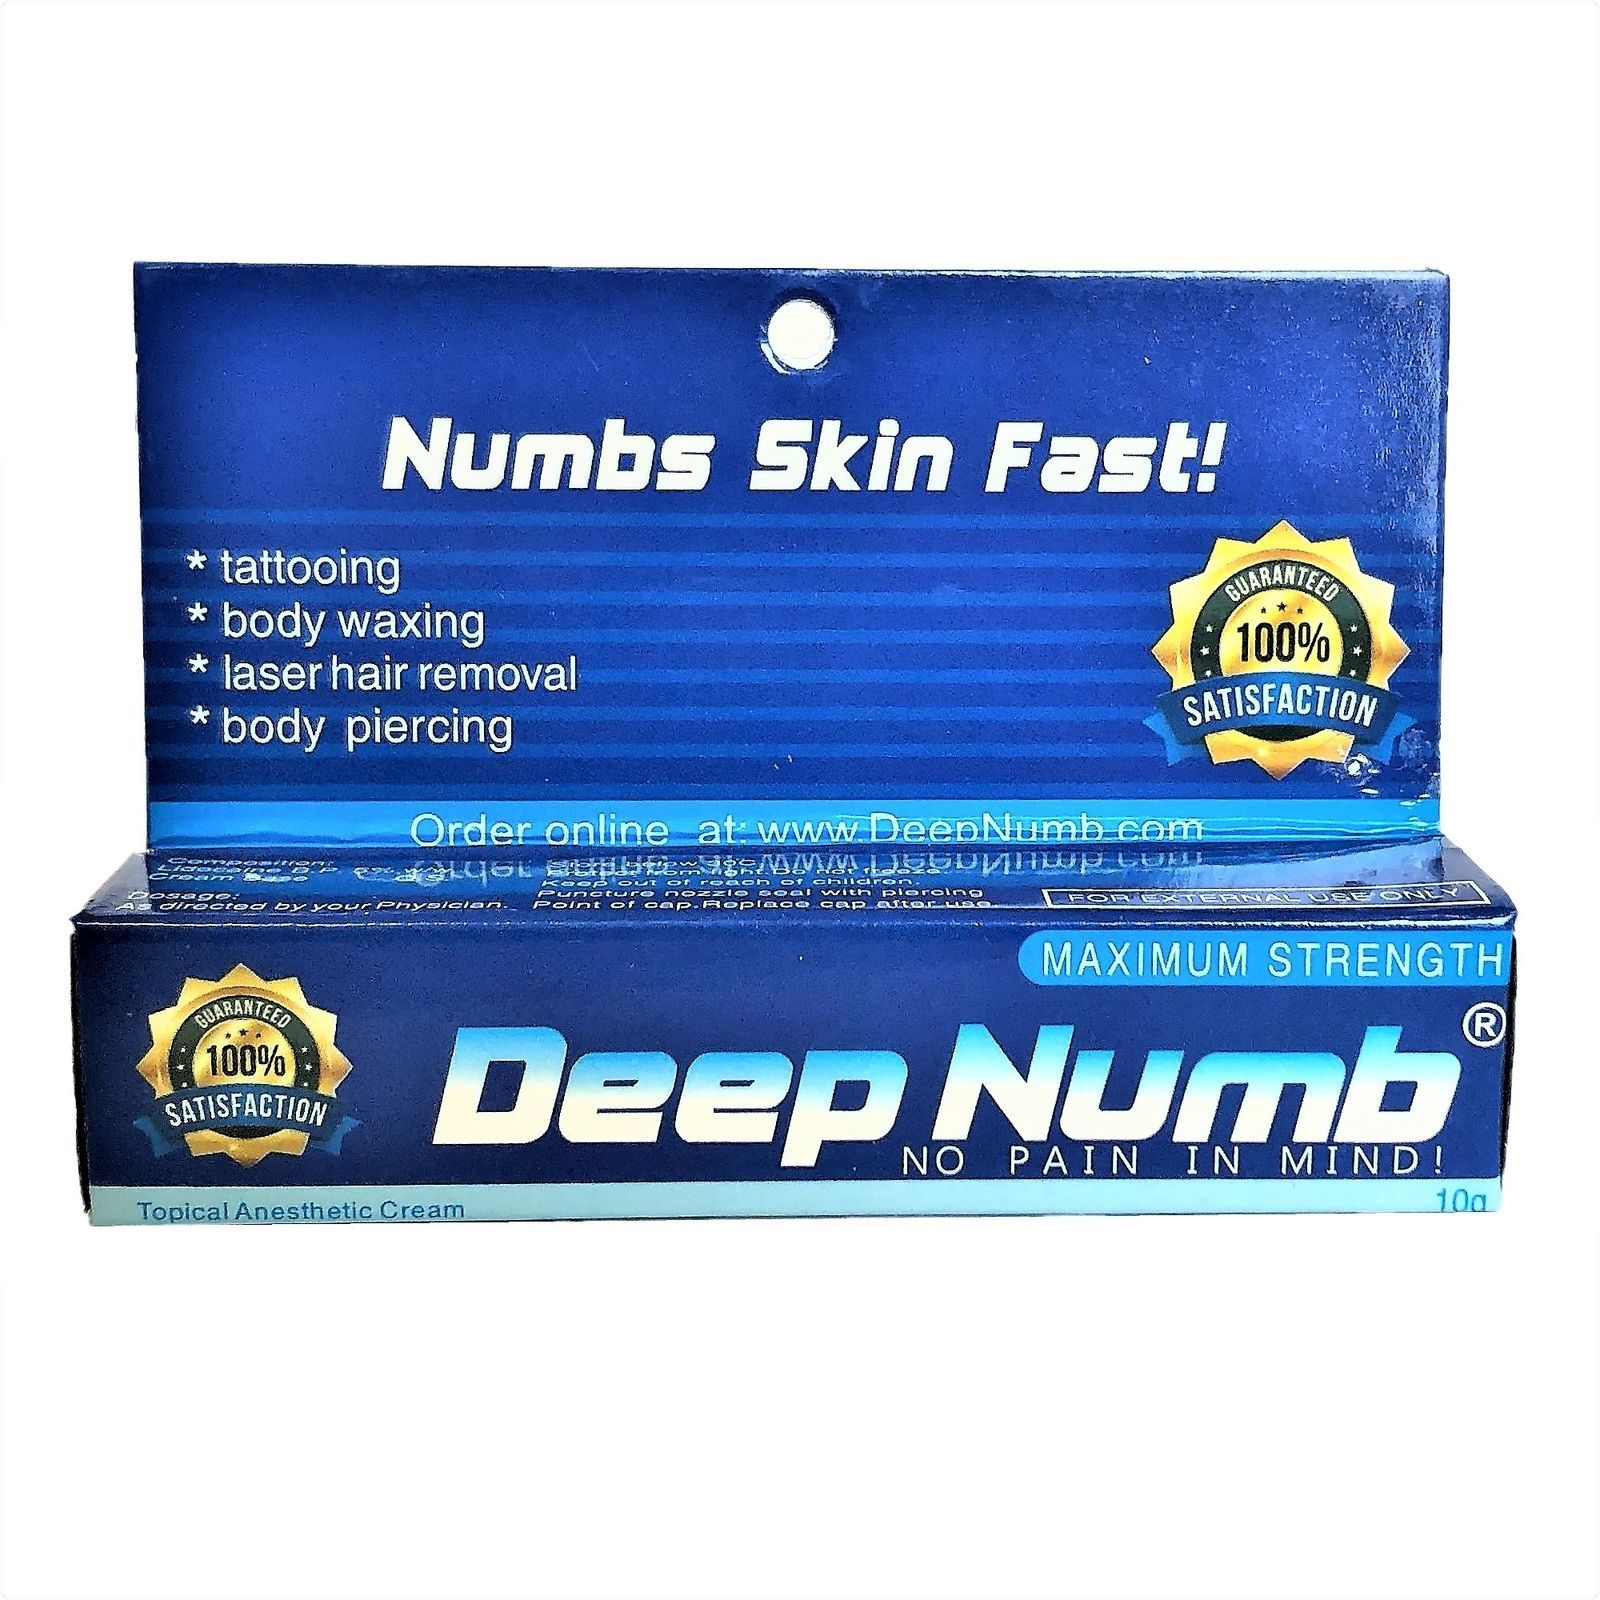 Deep Numb Cream: 9 customer reviews and 9 listings